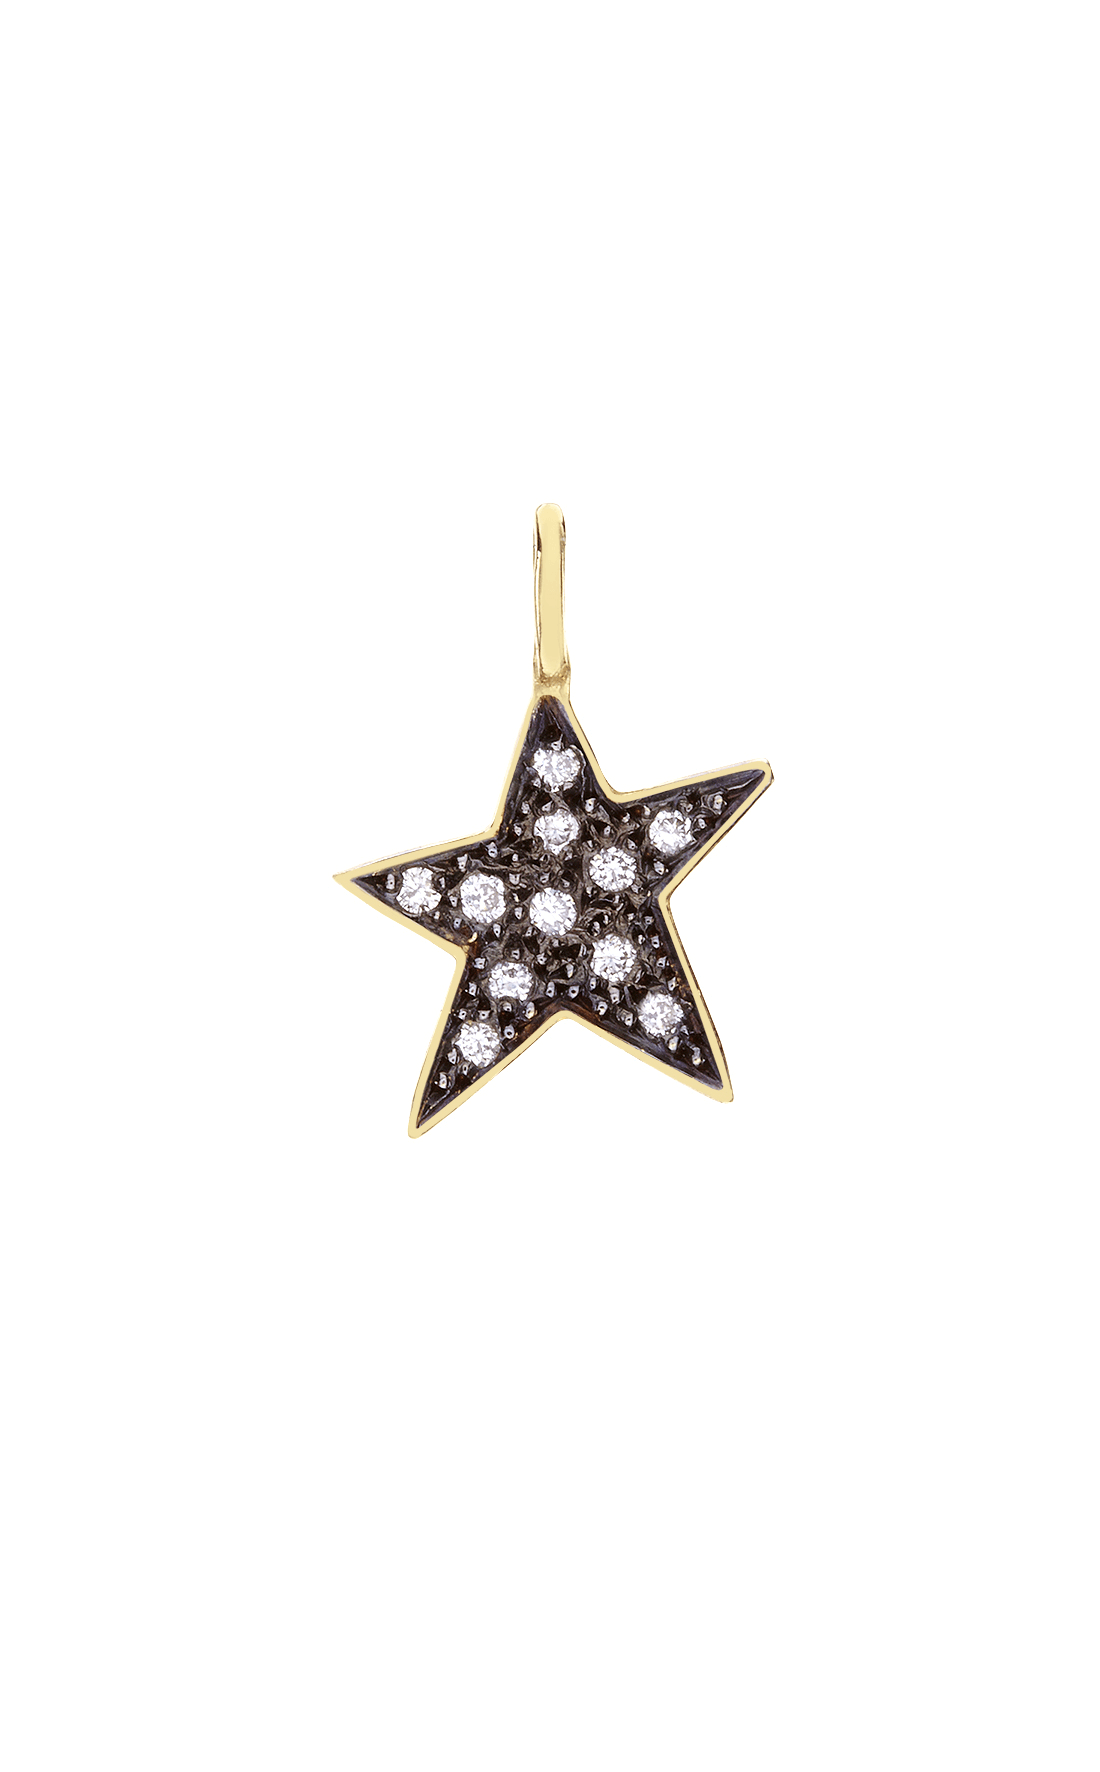 M018 - Star Diamond Pendant